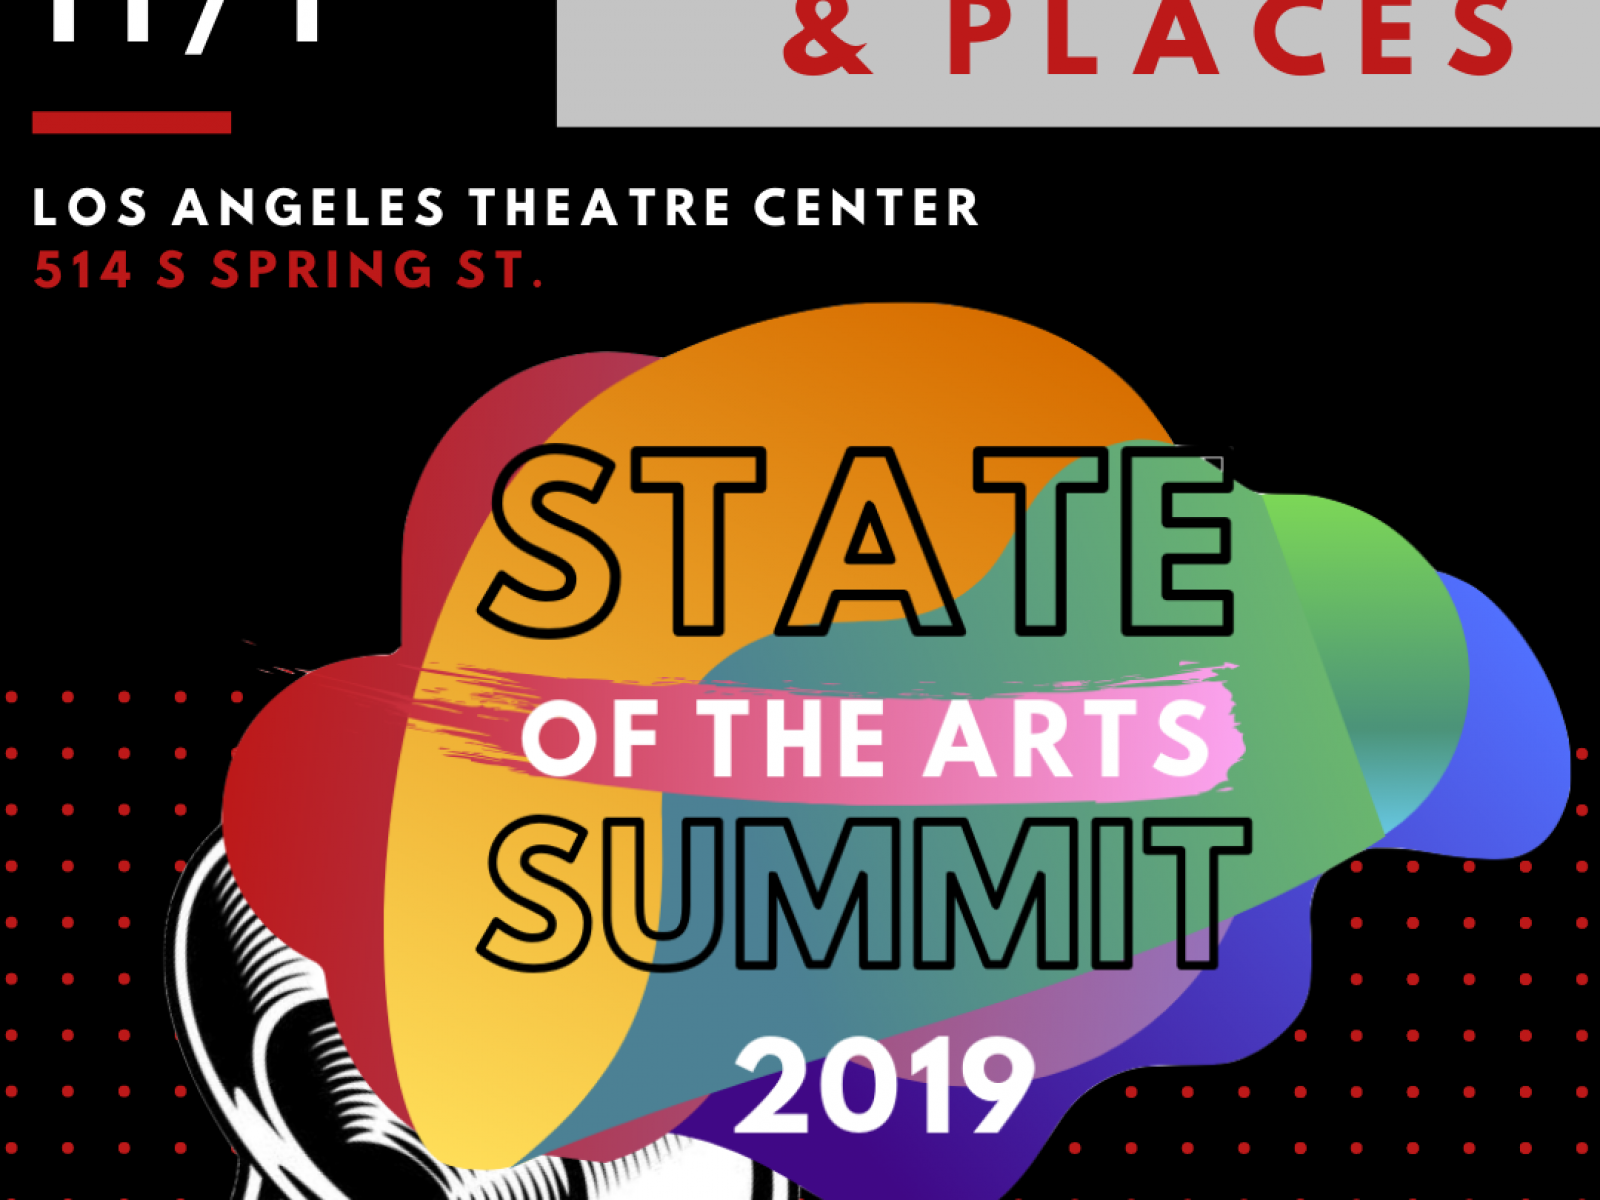 Arts for LA State of the Arts Summit logo; Los Angeles Theatre Center 514 S Spring Street; Friday 11/1